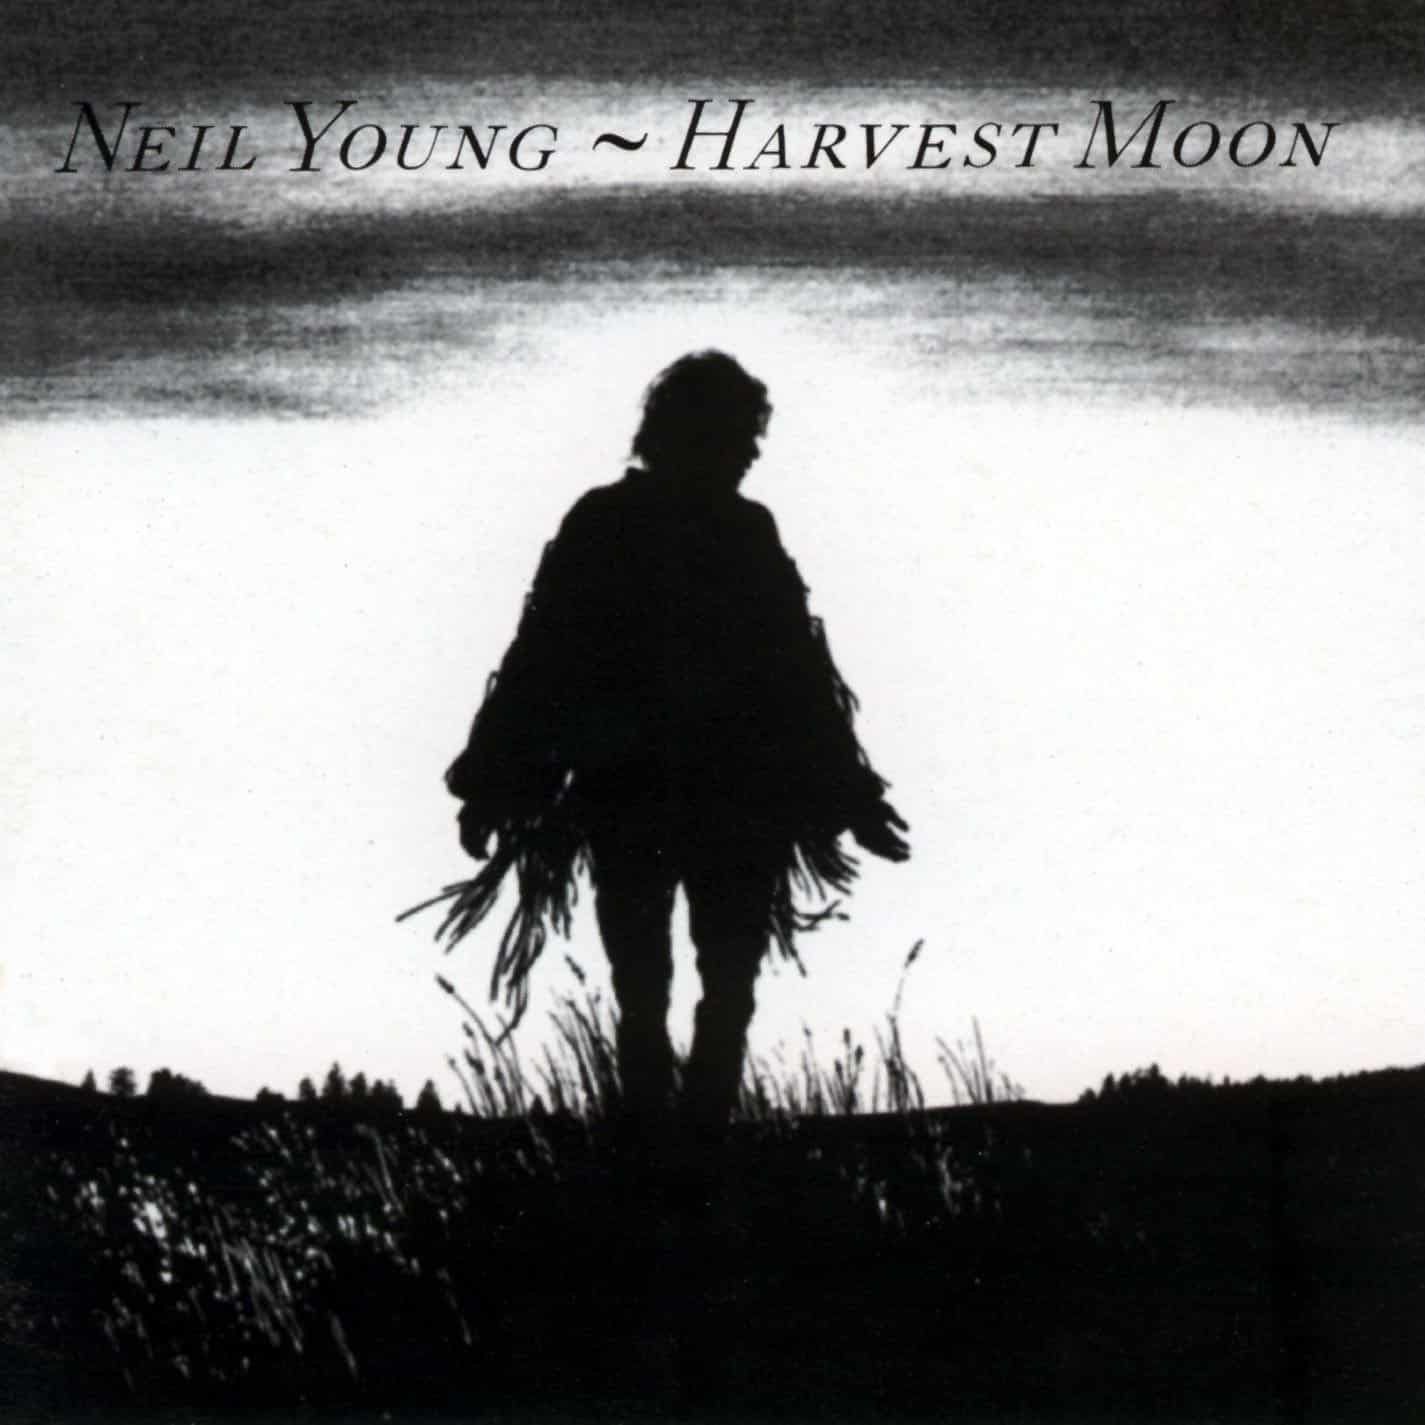 Neil Young's Harvest Moon